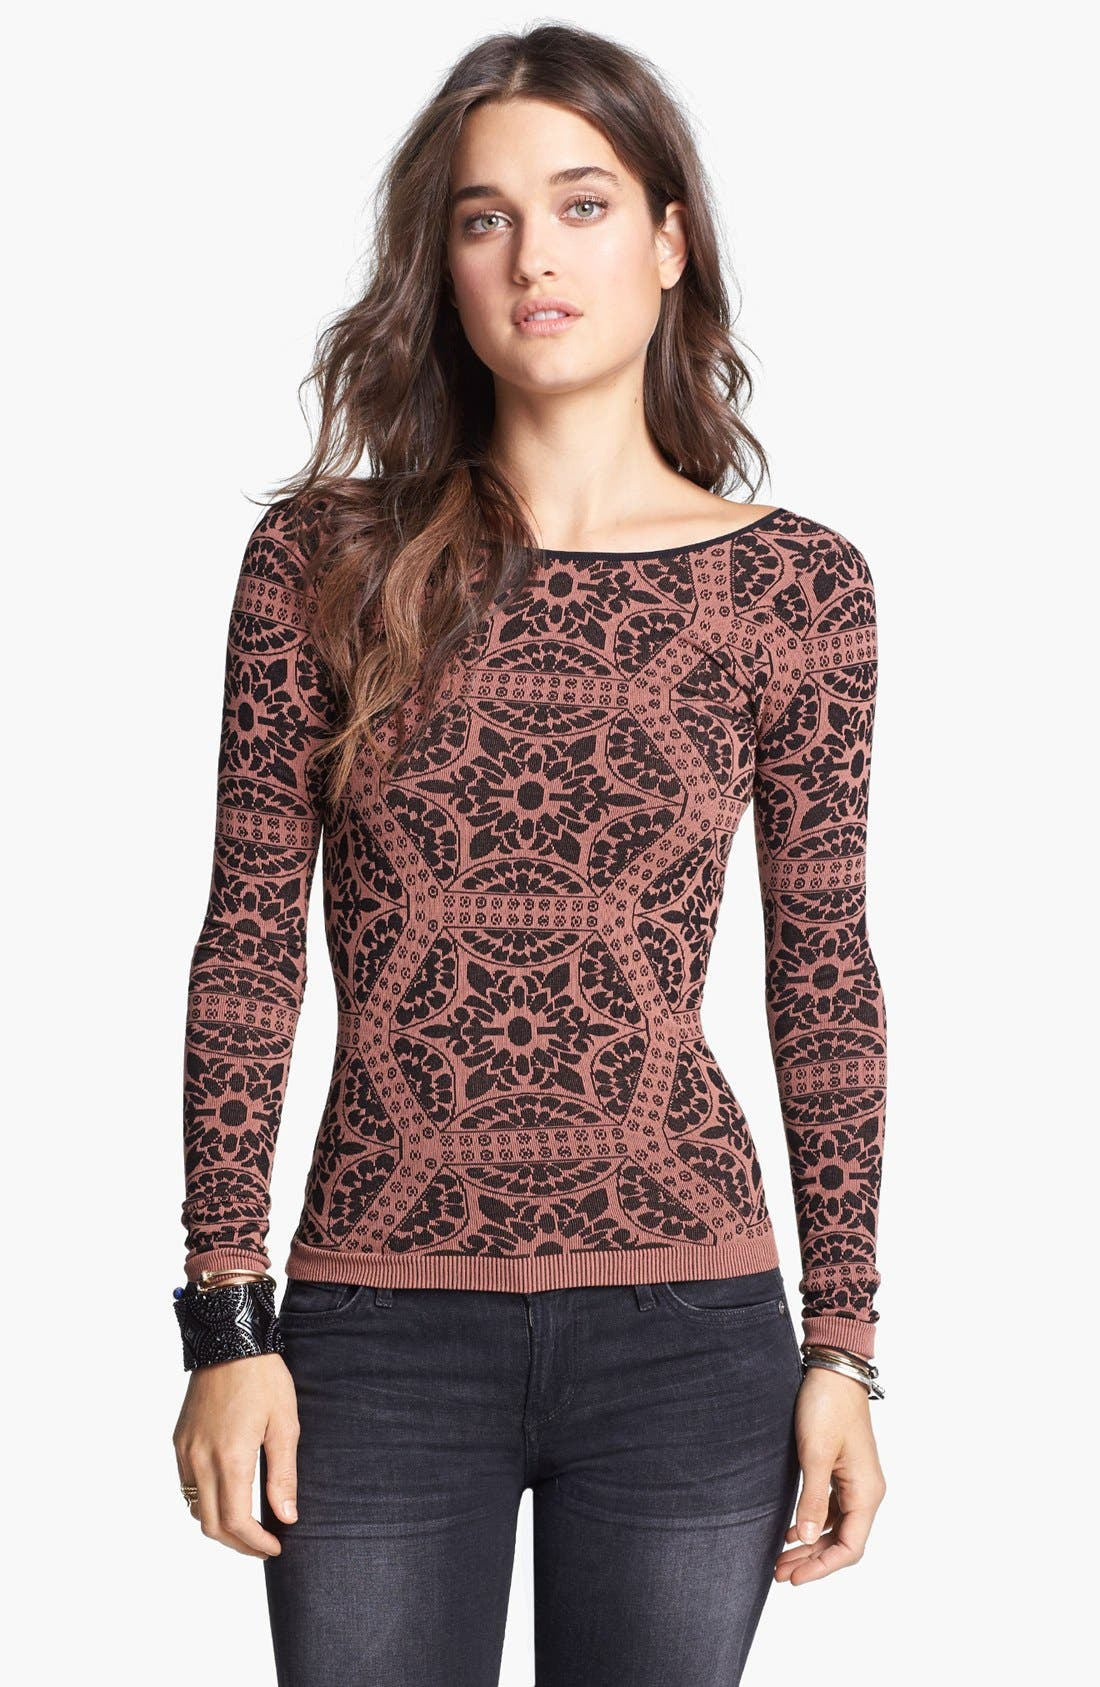 Alternate Image 1 Selected - Free People Print Scoop Back Top